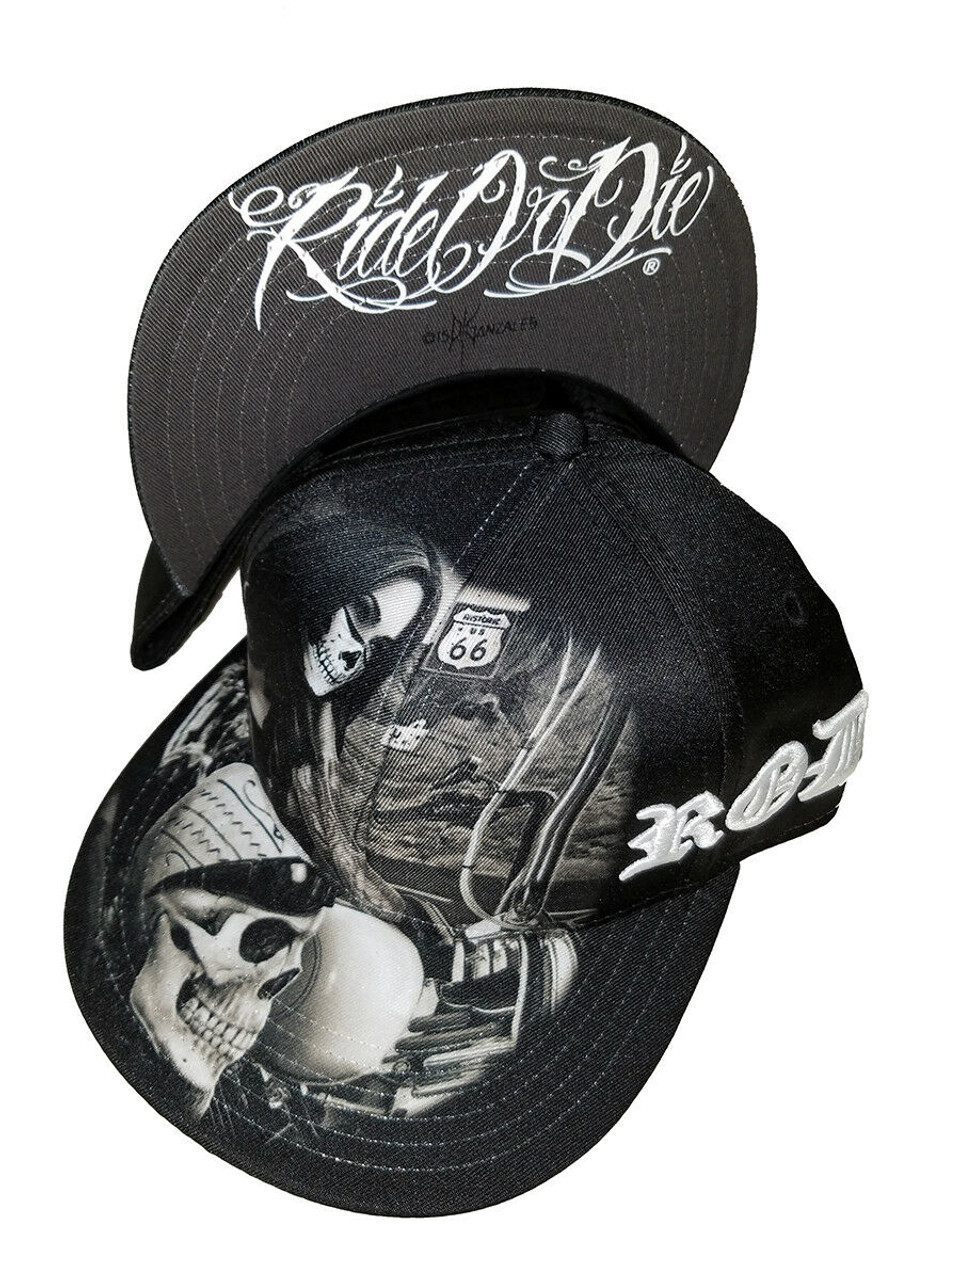 DGA David Gonzales Art Ride or Die Highway to Hell Motorcycle Skull Snapback  Hat - Fearless Apparel 7c52036fbf08